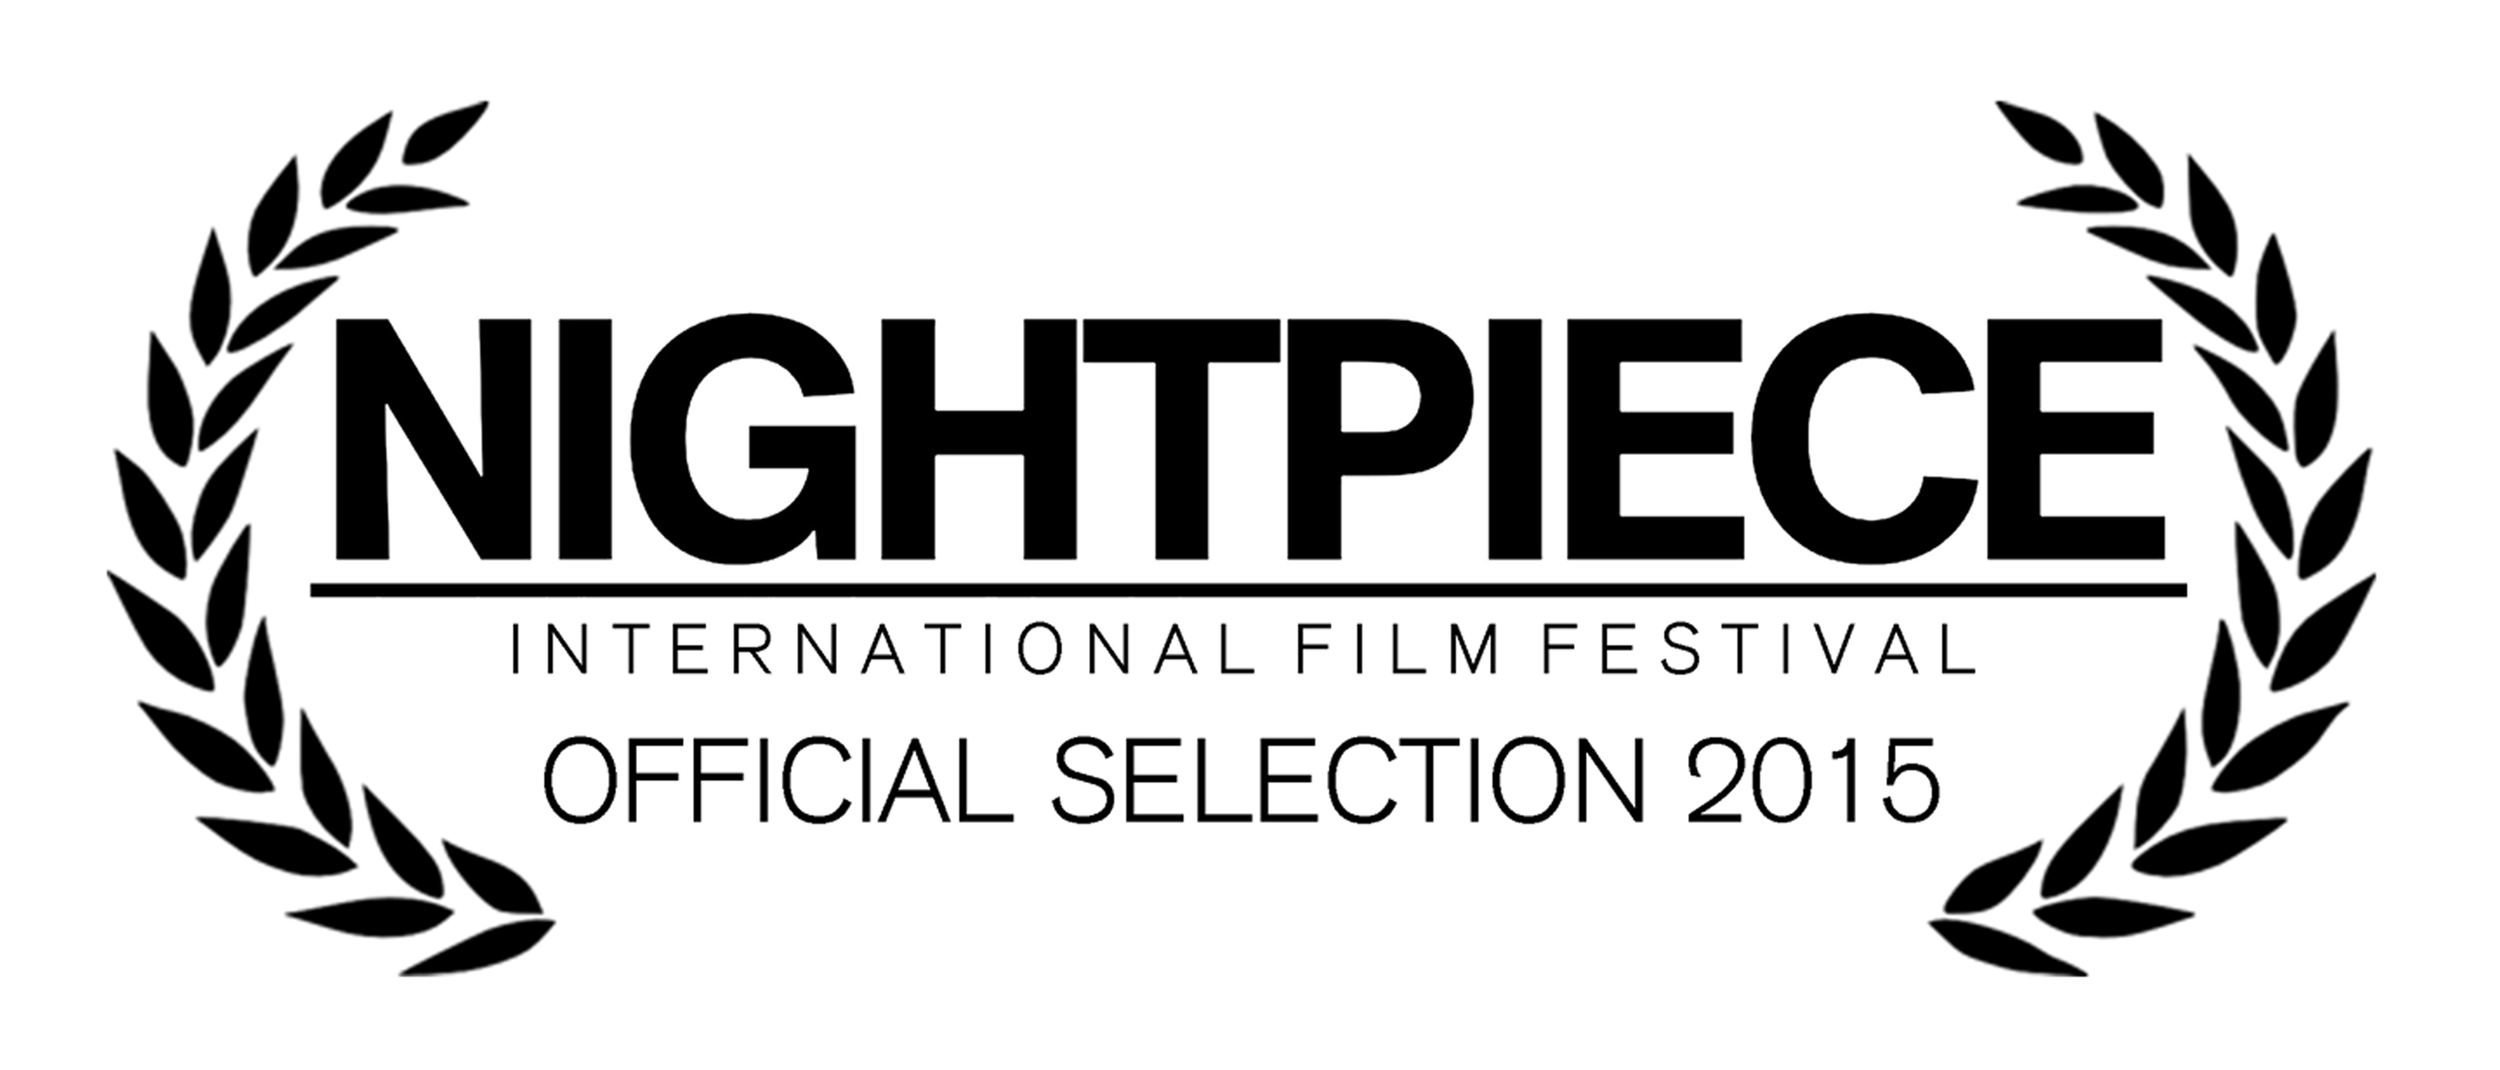 Nightpiece Film Festival Official Selection Logo Laurel.png